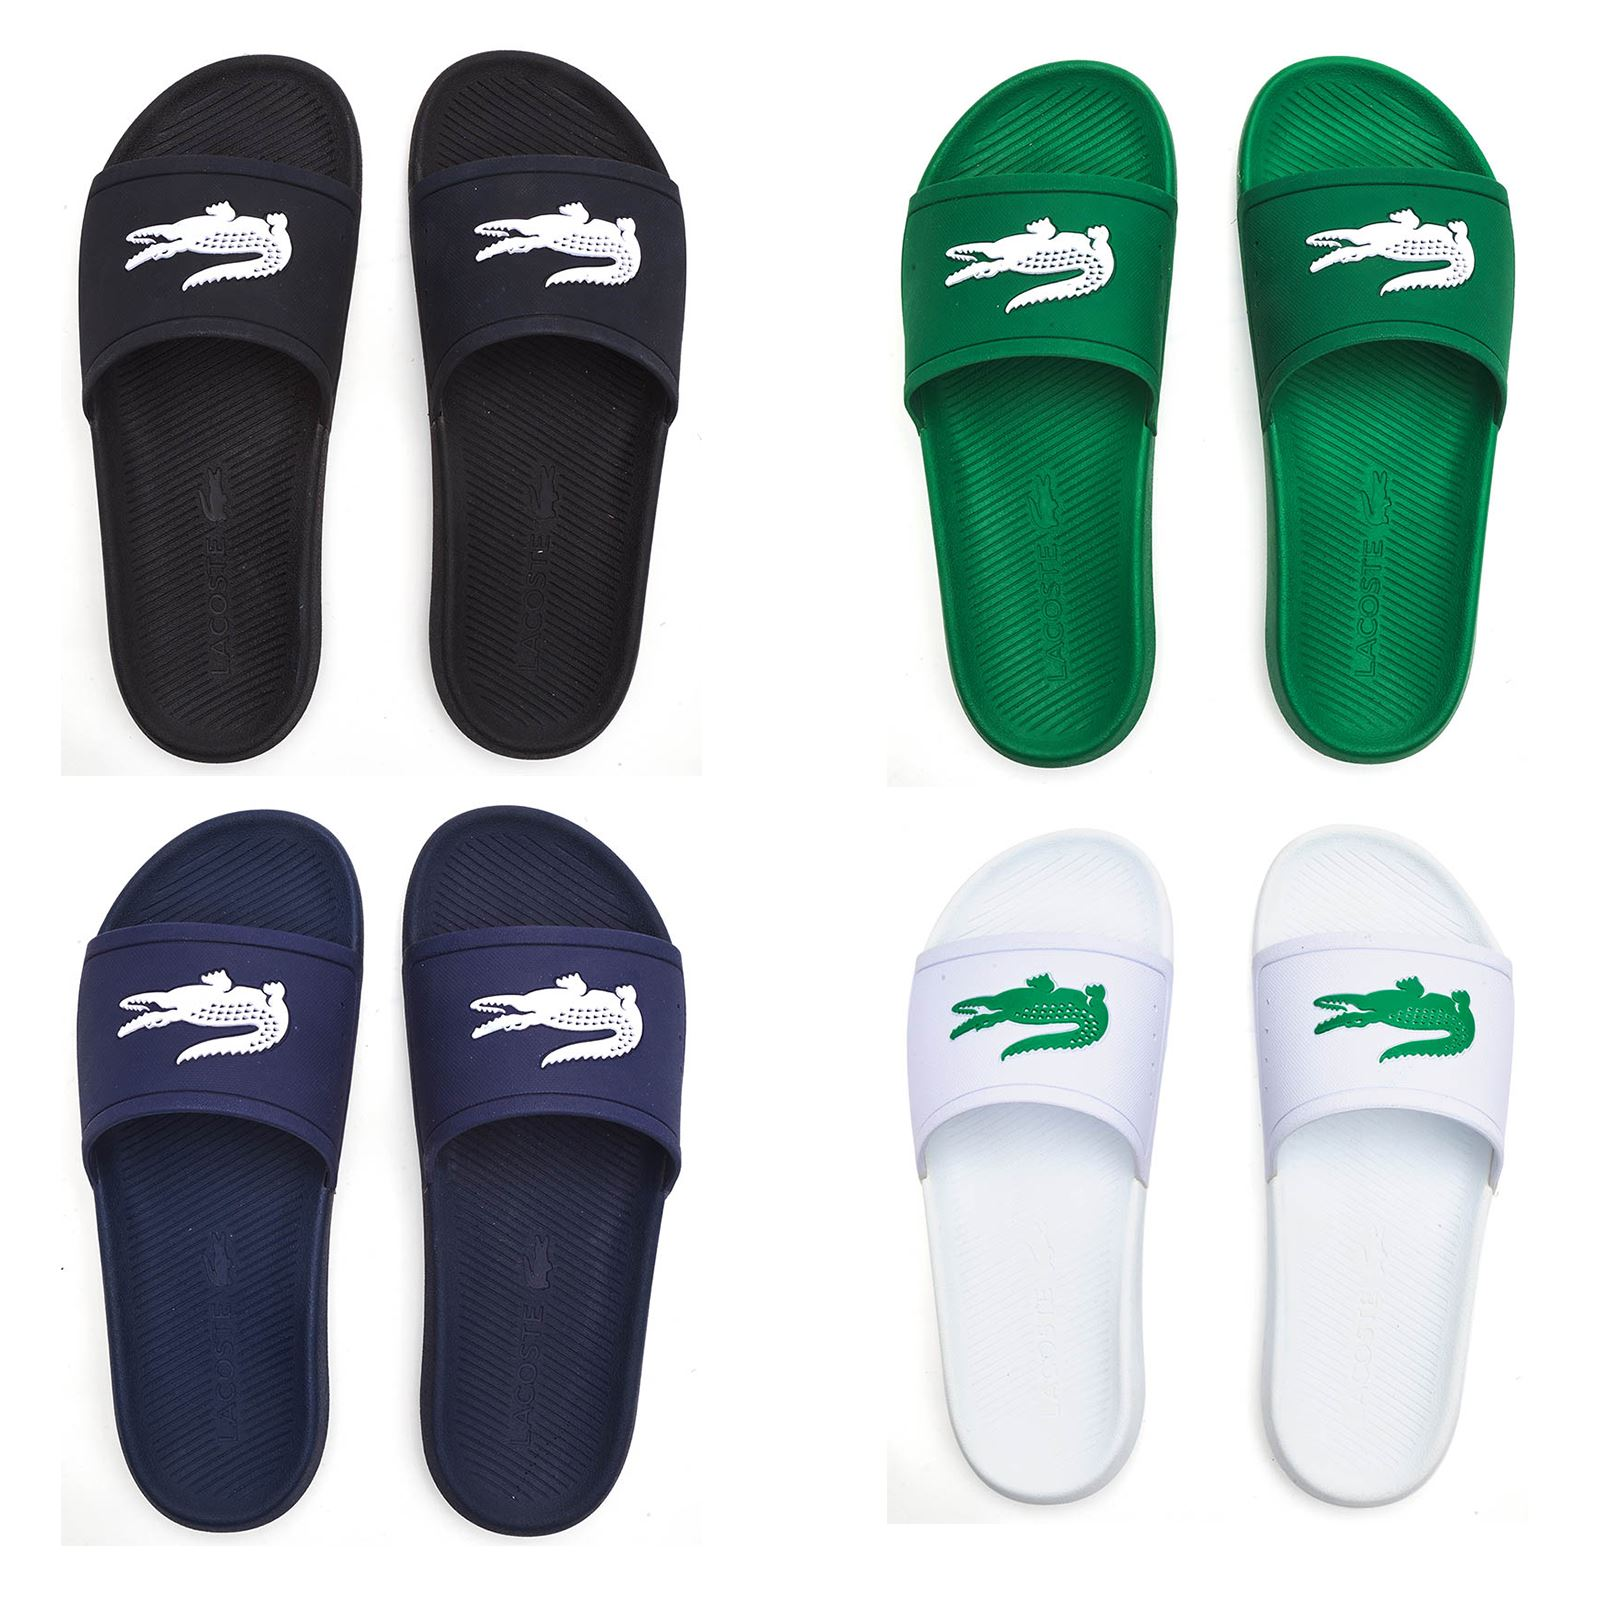 380090f94b8a Details about Lacoste Croco 119 1 CMA Slide Pool Beach Sandals in Black,  Blue, White & Green